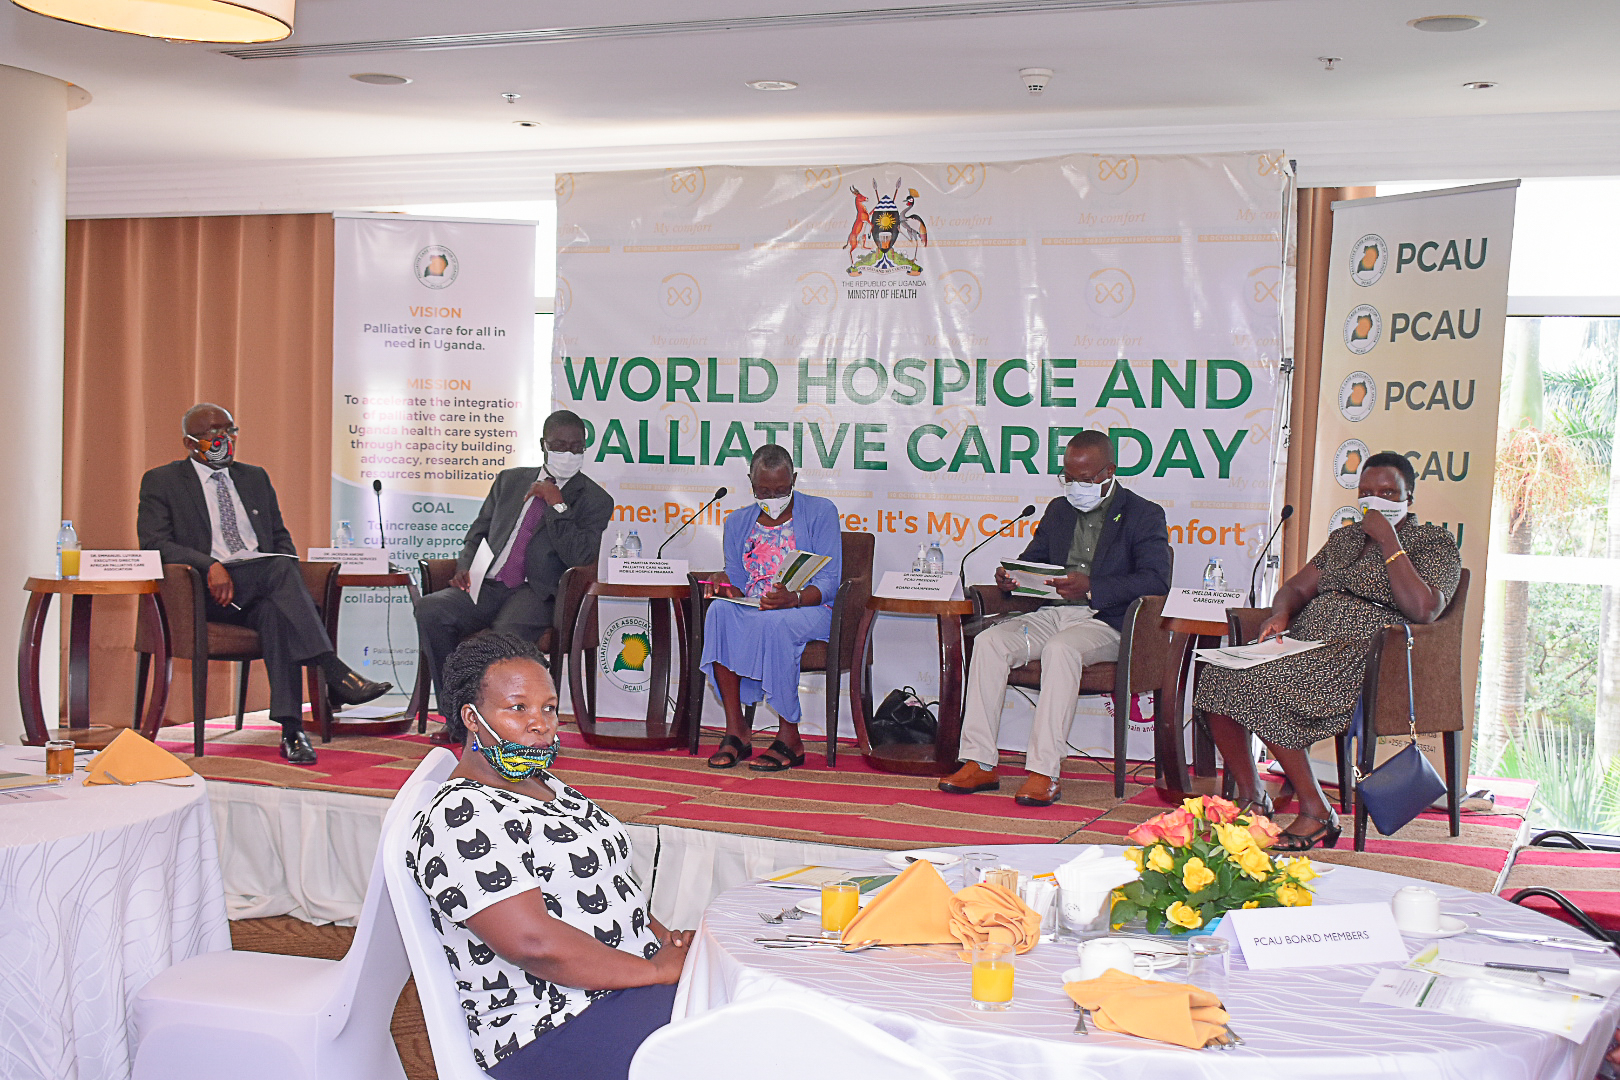 WORLD HOSPICE AND PALLIATIVE CARE DAY 2020 COMMEMORATION IN UGANDA